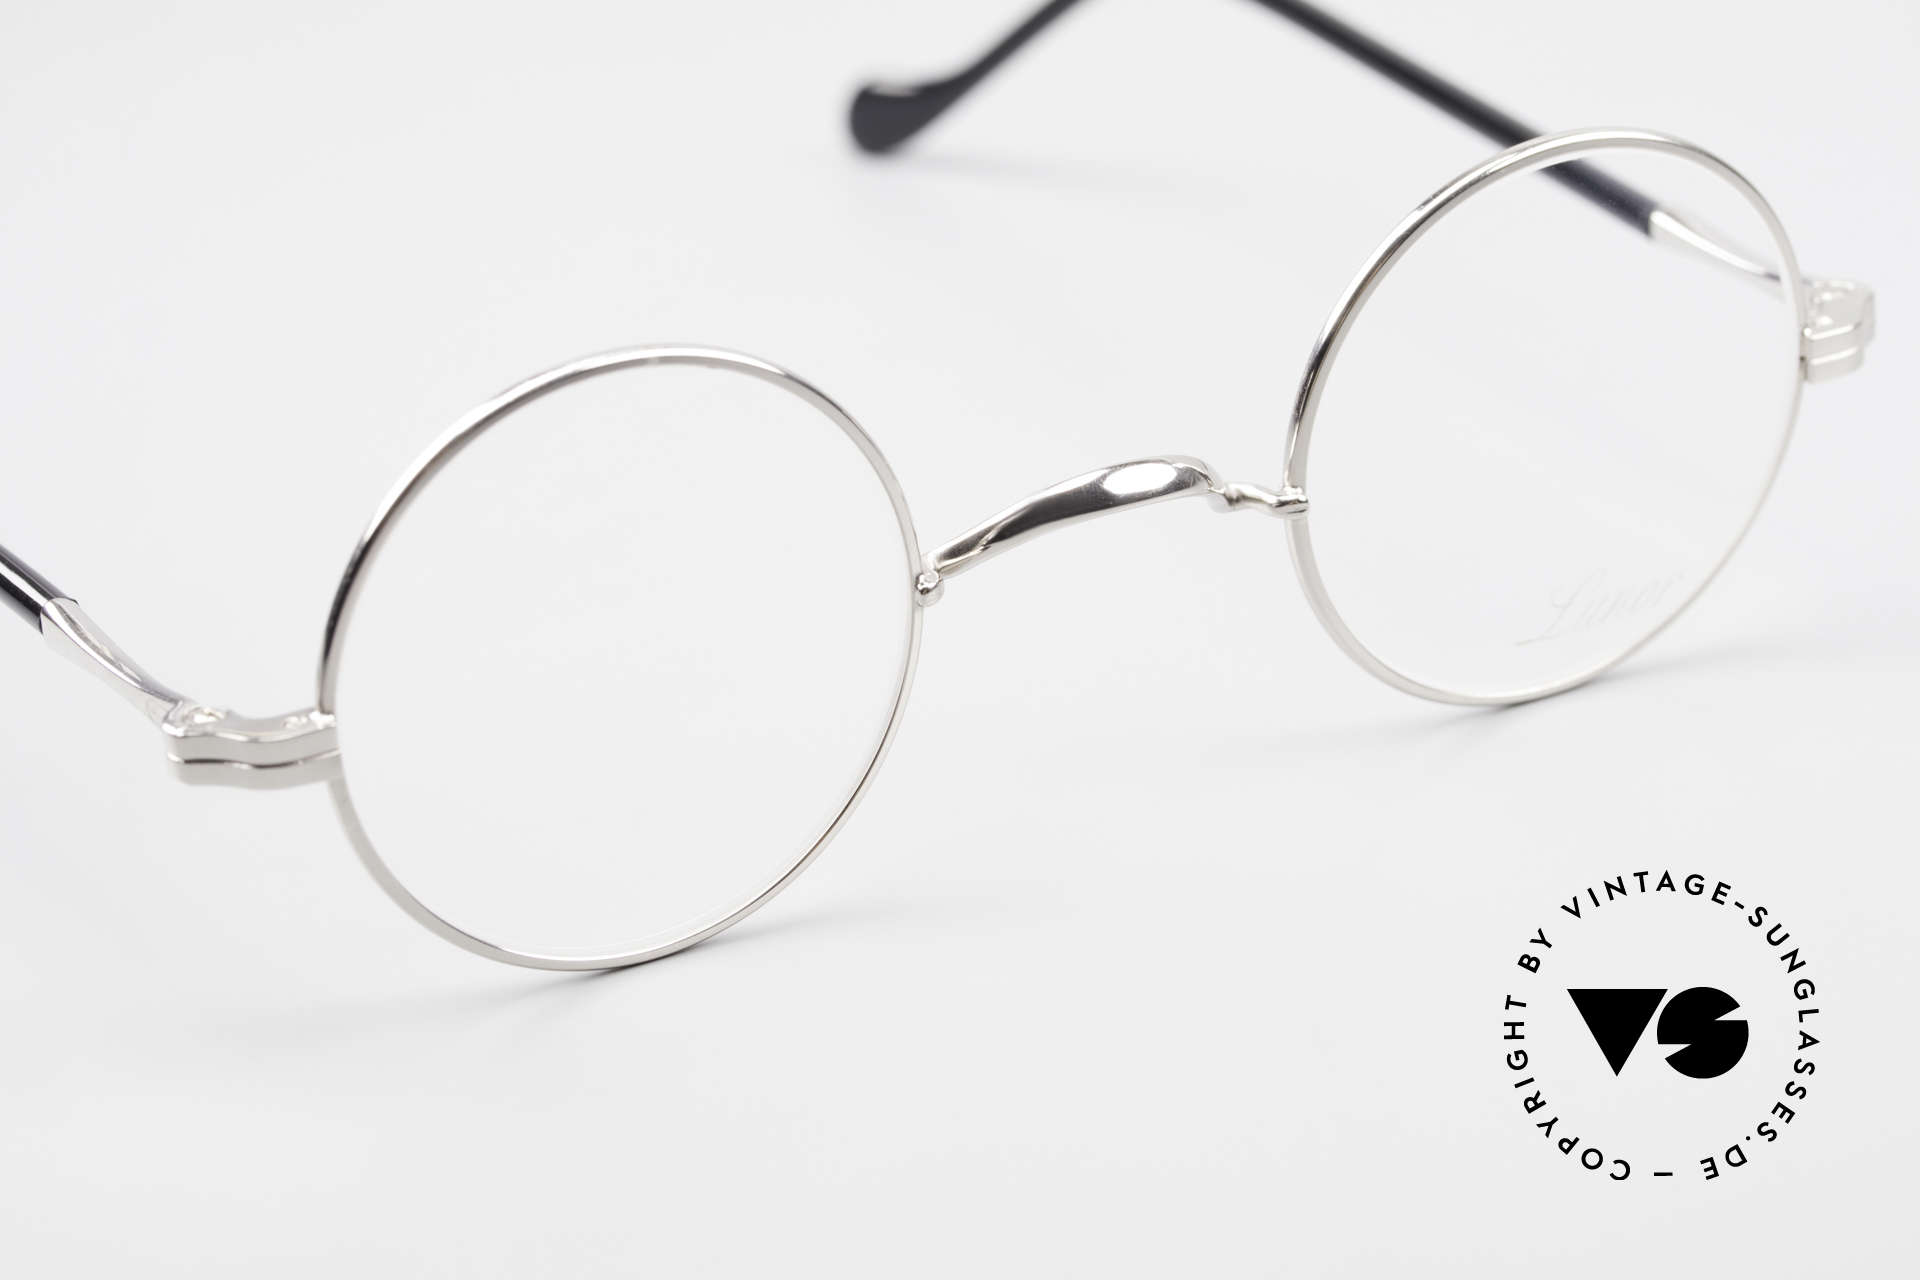 Lunor II A 12 Round Vintage Frame Platinum, unworn RARITY (for all lovers of quality) from app. 2010, Made for Men and Women